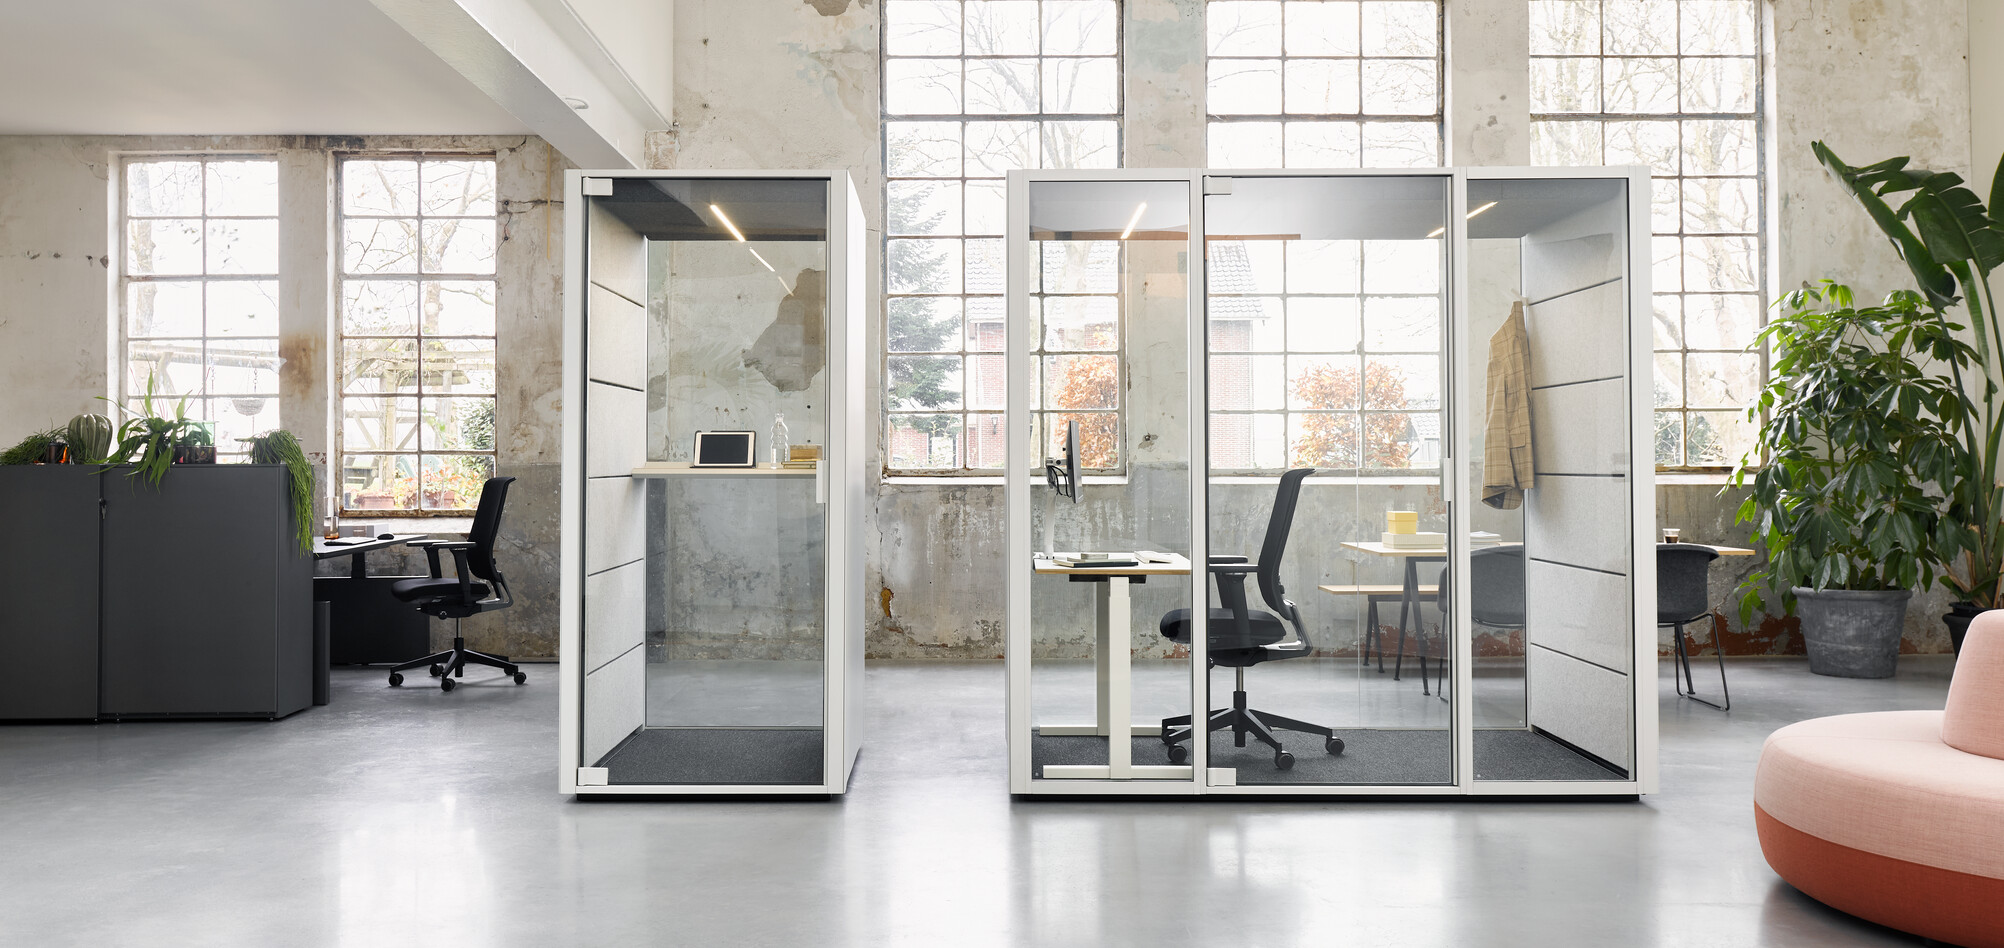 Ahrend Qabin booth and space in space with Ease office chair and white desk with Balance SDK Recharge and Well in a Hybrid working community setting